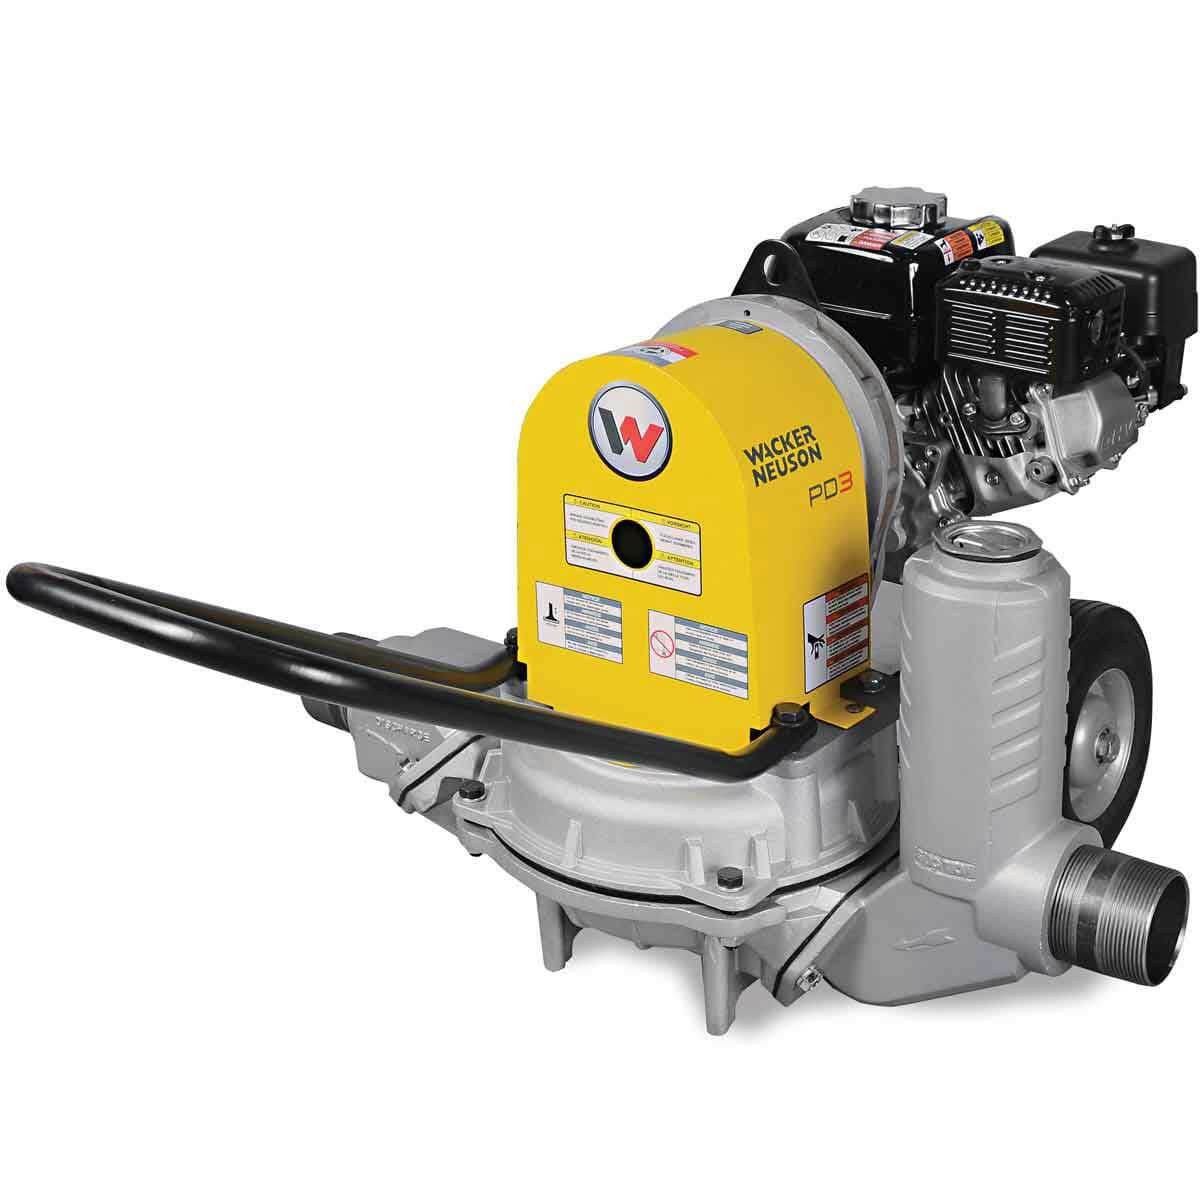 Wacker Neuson PDT 3 inch Pump